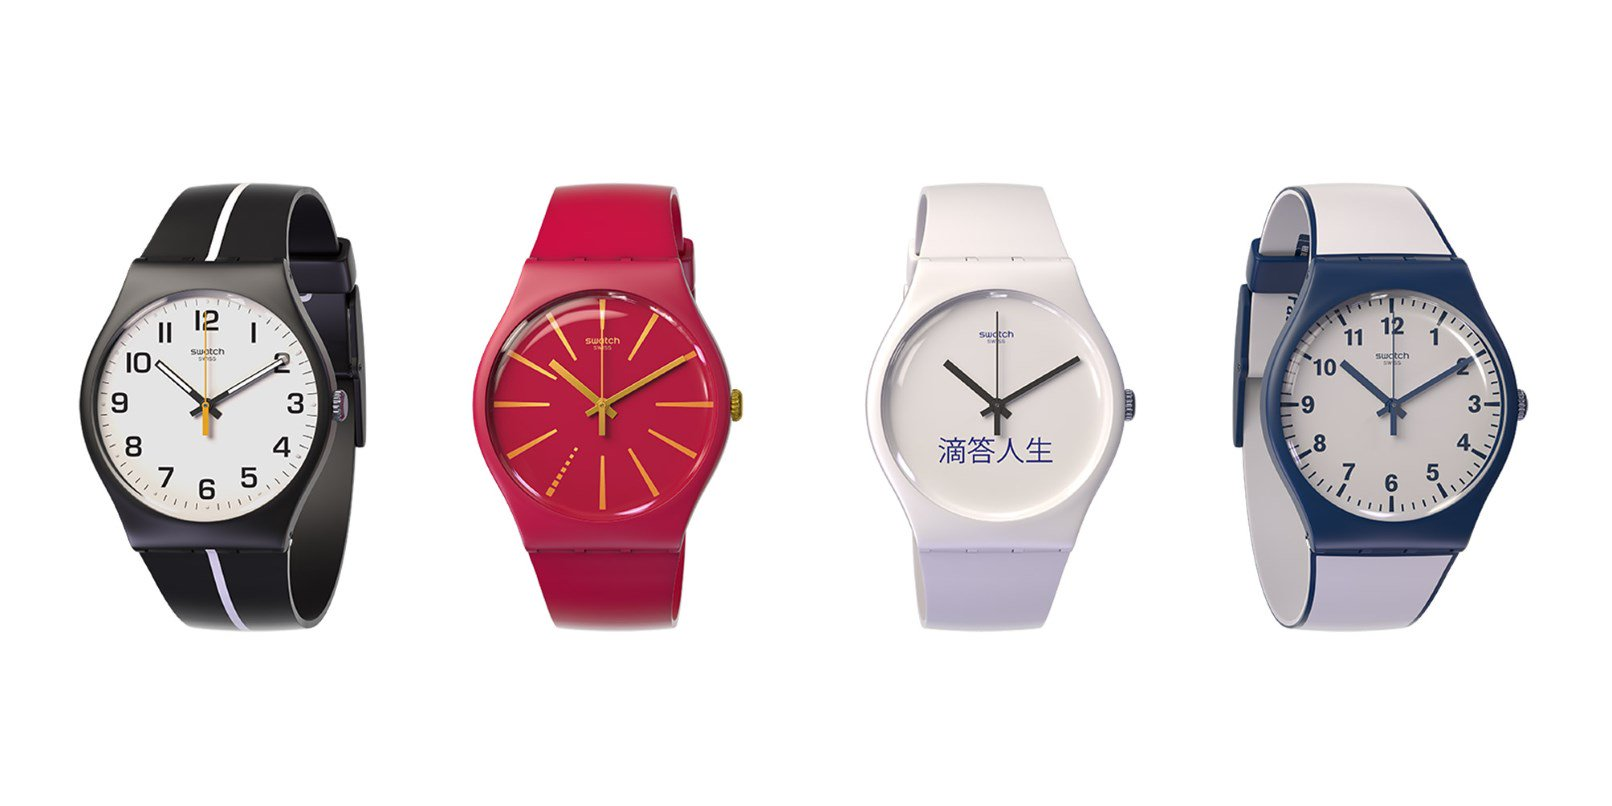 RT @TheNextWeb: Swatch teams up with Visa to let you pay with a flick of the wrist in 2016 https://t.co/Mp6MMKYGoc https://t.co/qpsS8y8P8A